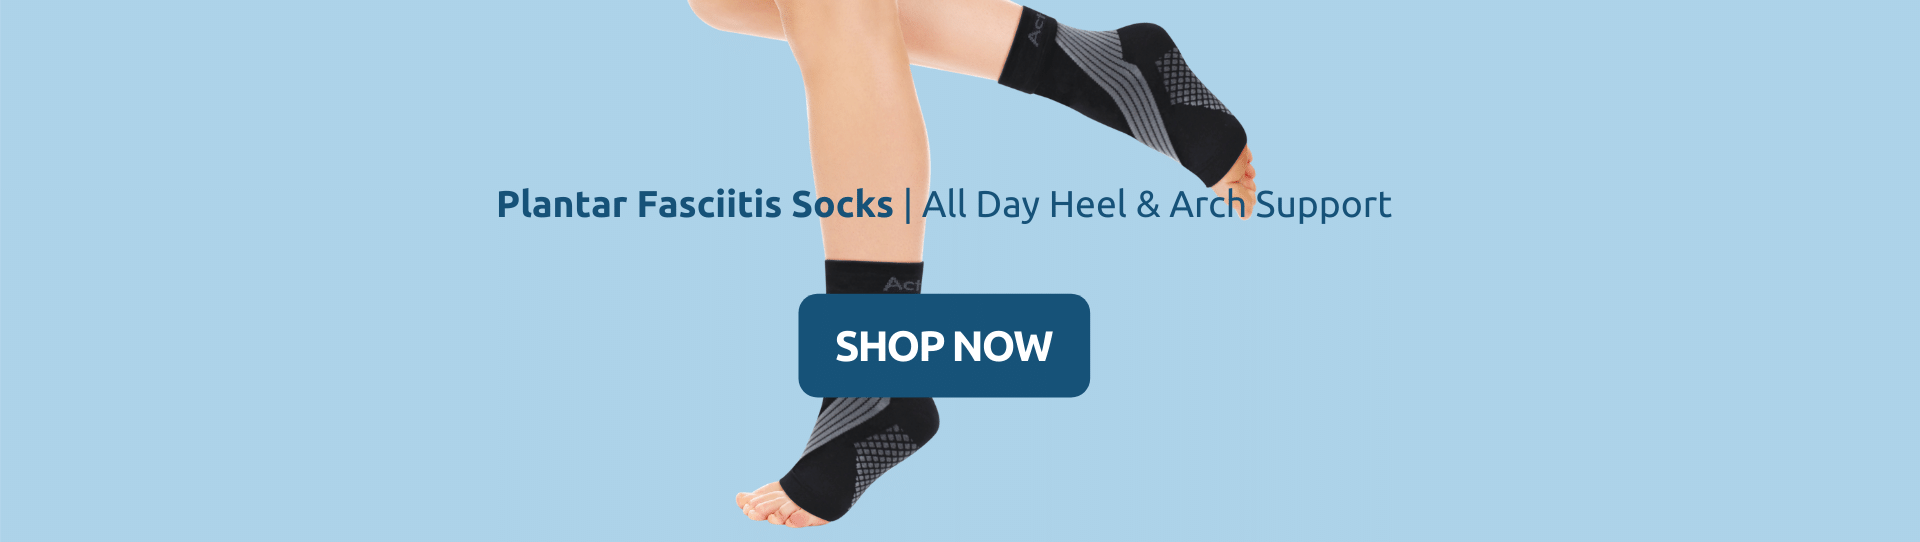 Buy Plantar Fasciitis Socks | All Day Heel & Arch Support